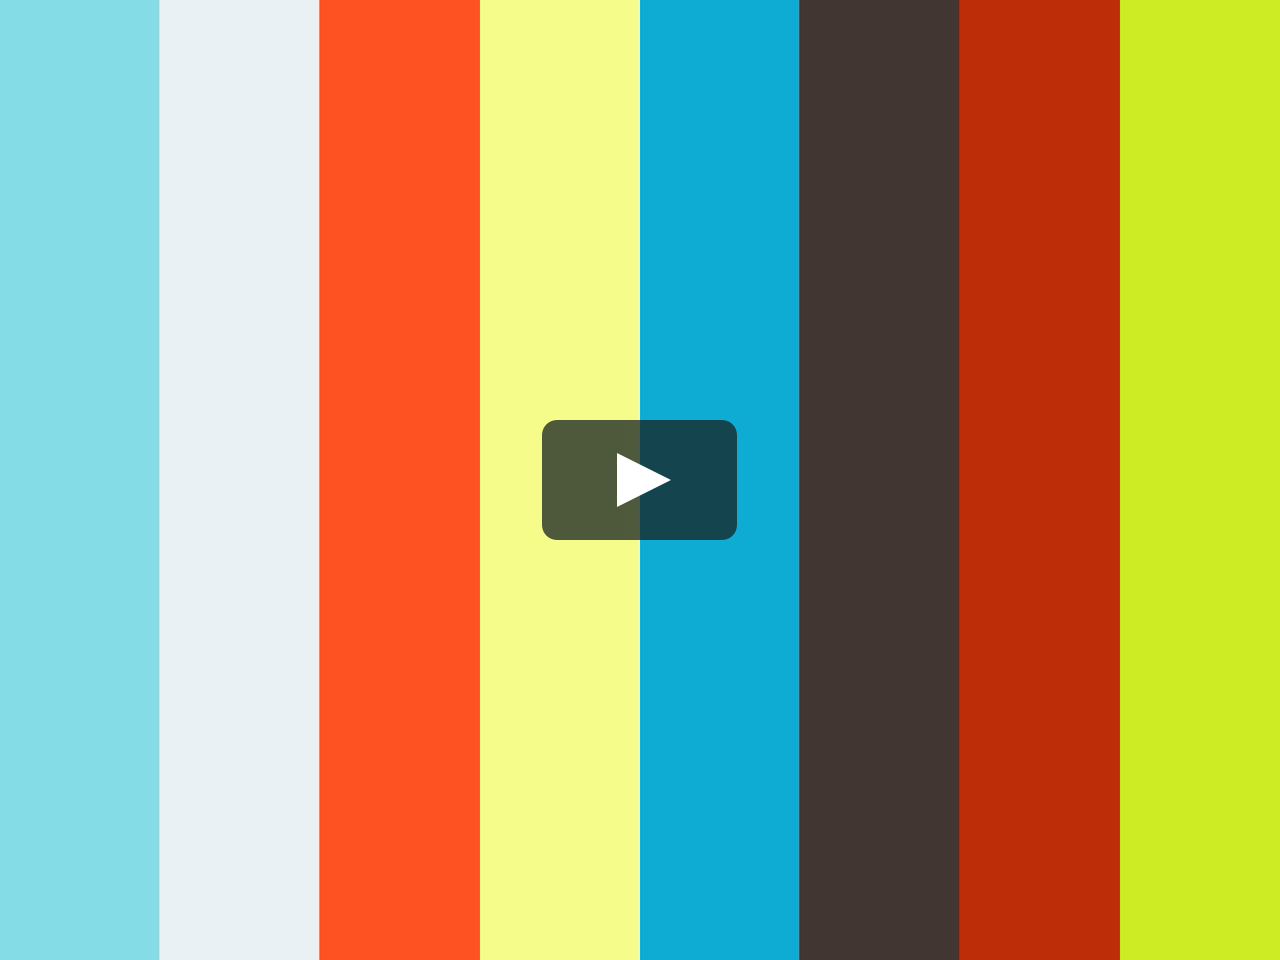 it s all write suzette guest robert atwan great american it s all write suzette guest robert atwan great american essays series on vimeo